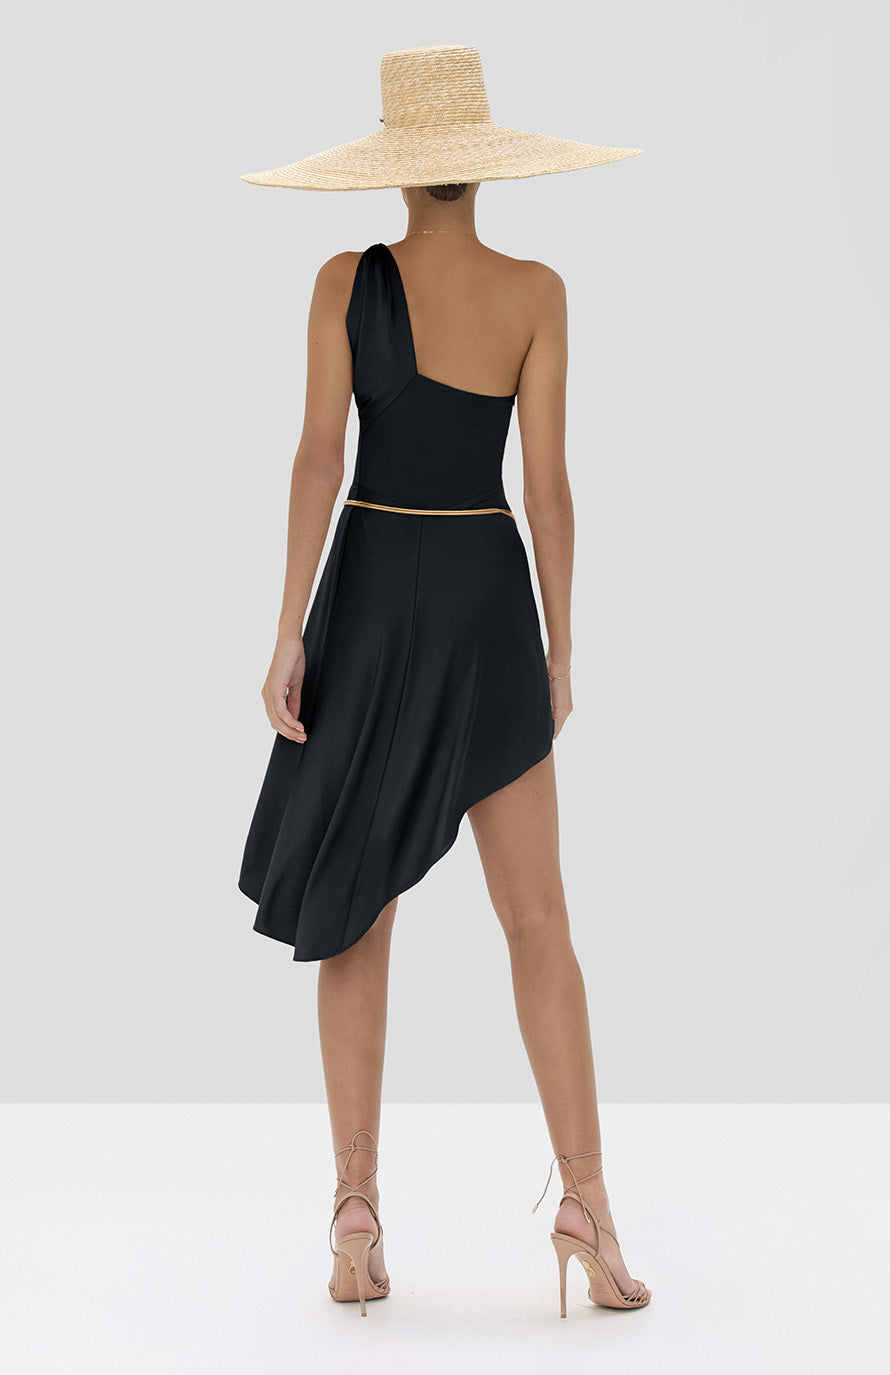 Alexis Mellie Dress in Black from the Spring Summer 2020 Collection - Rear View